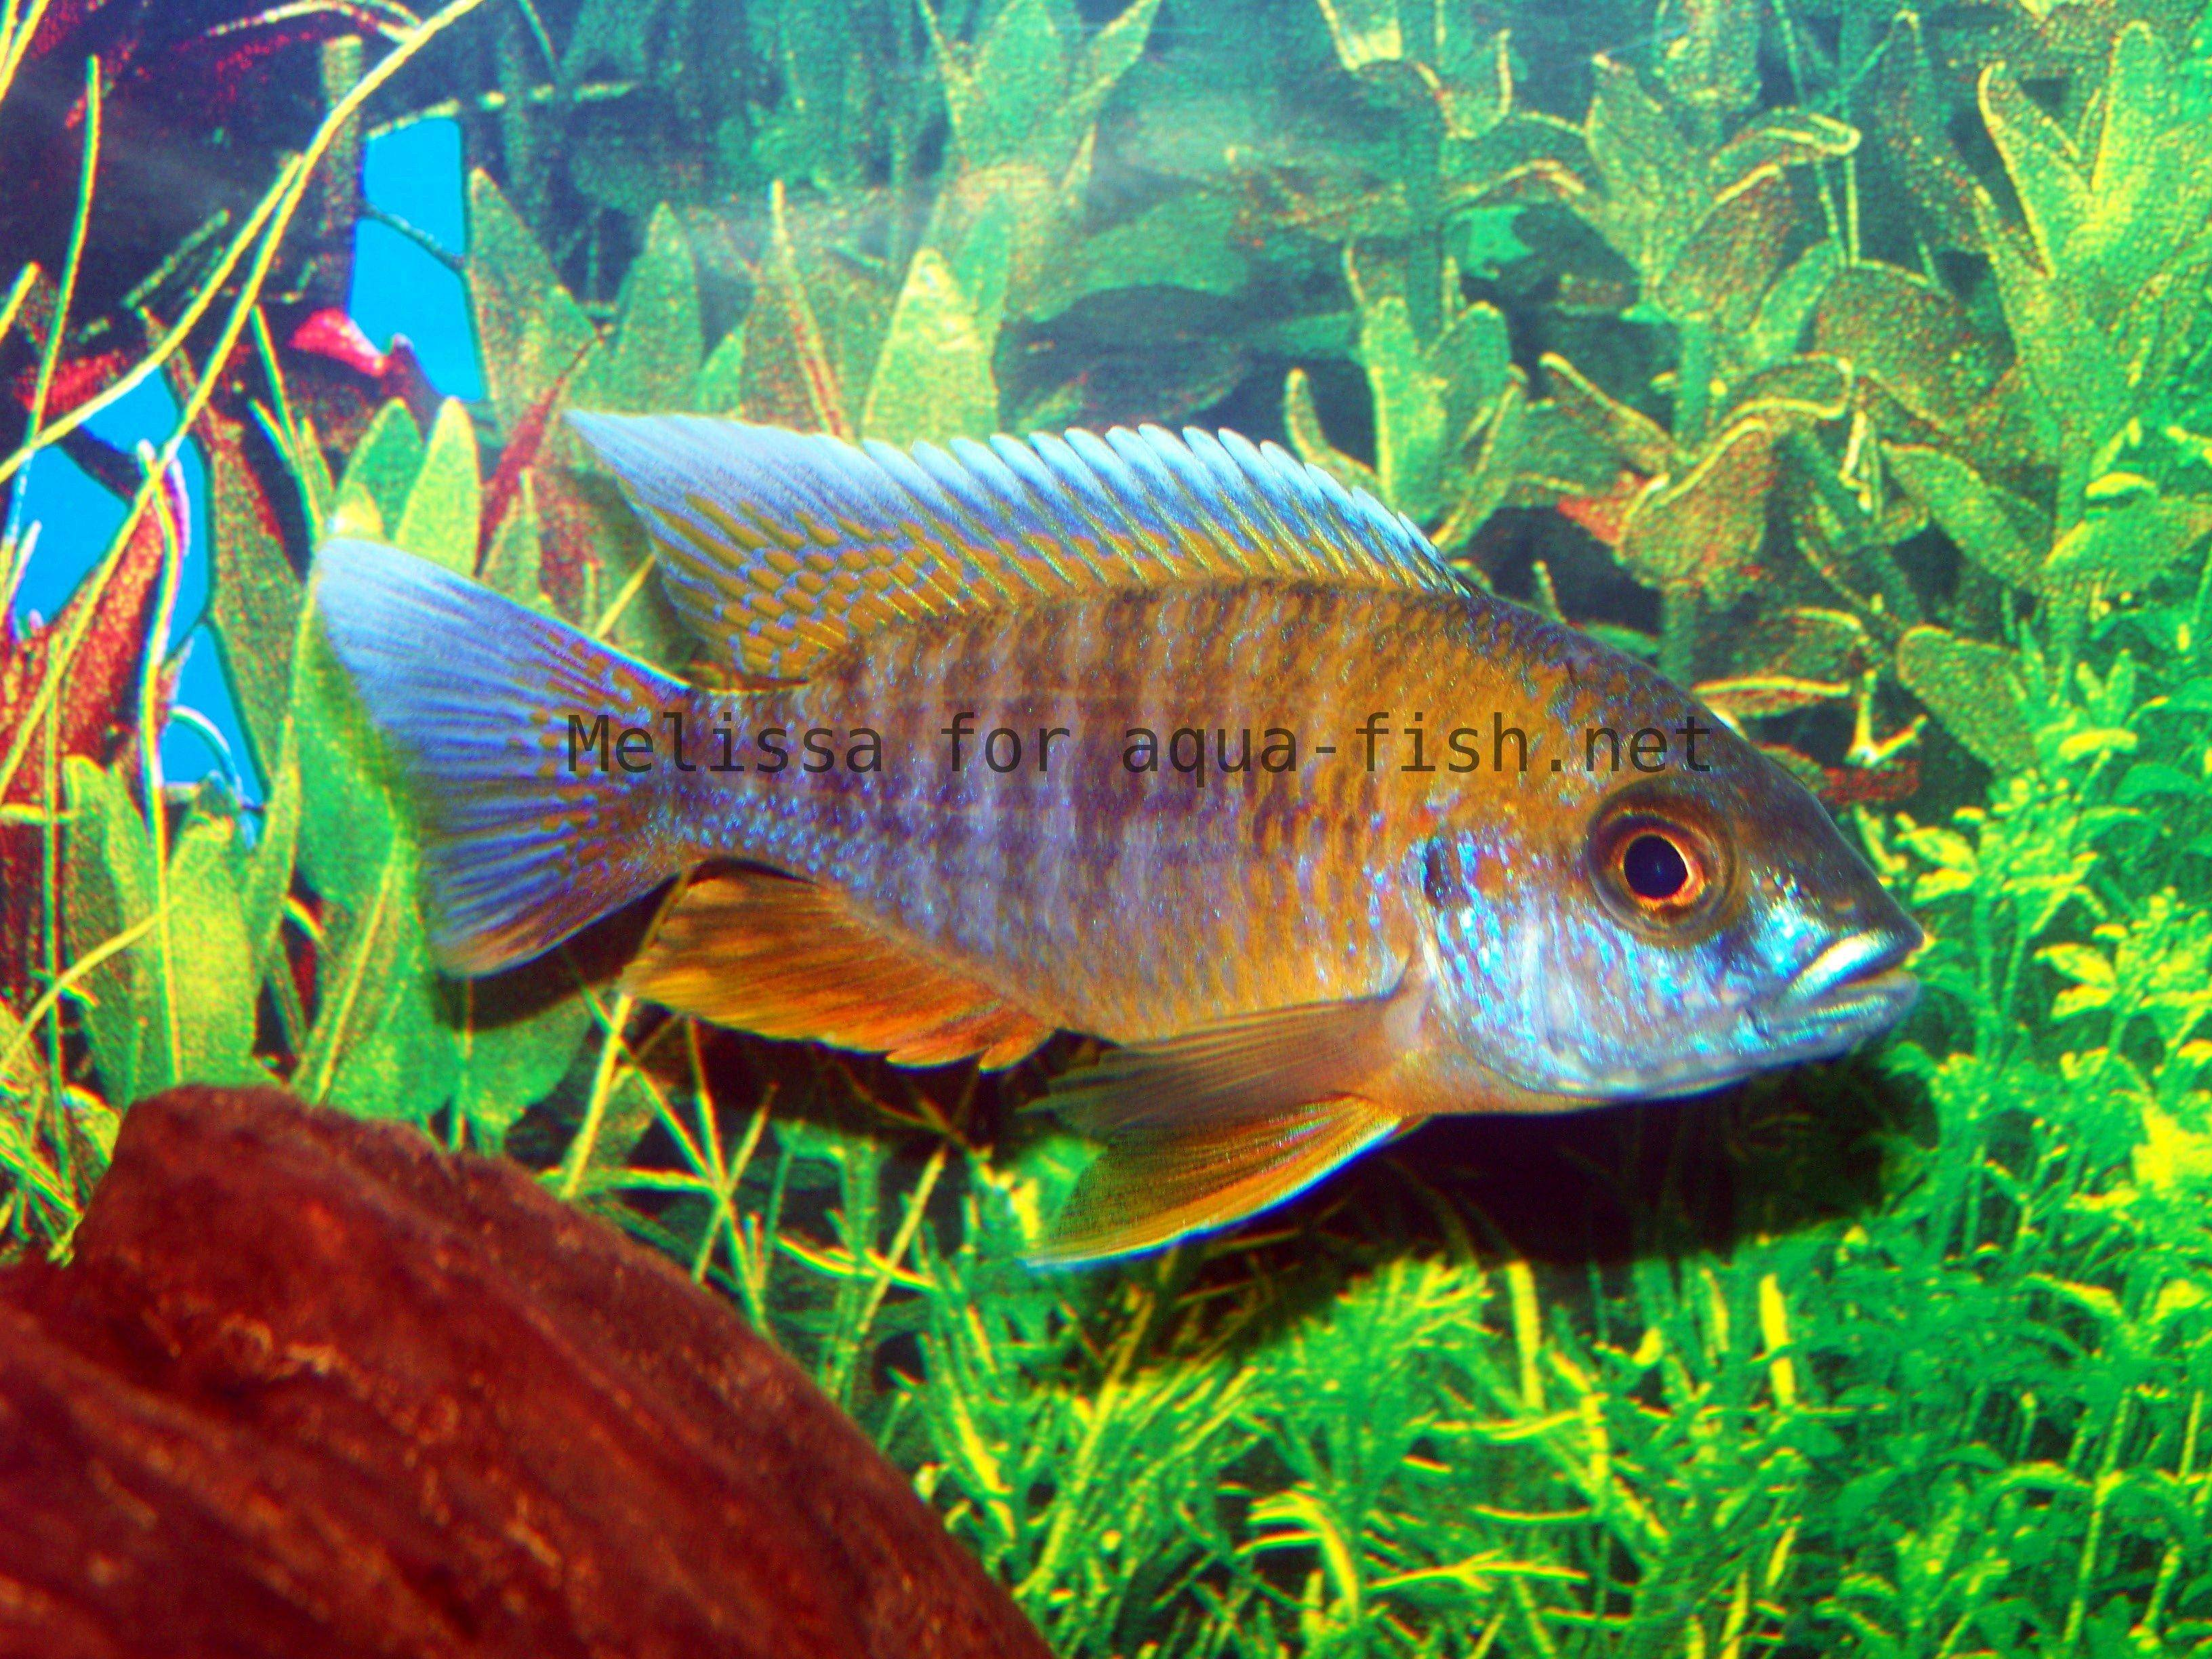 A page and forum dedicated to care of Peacock cichlids